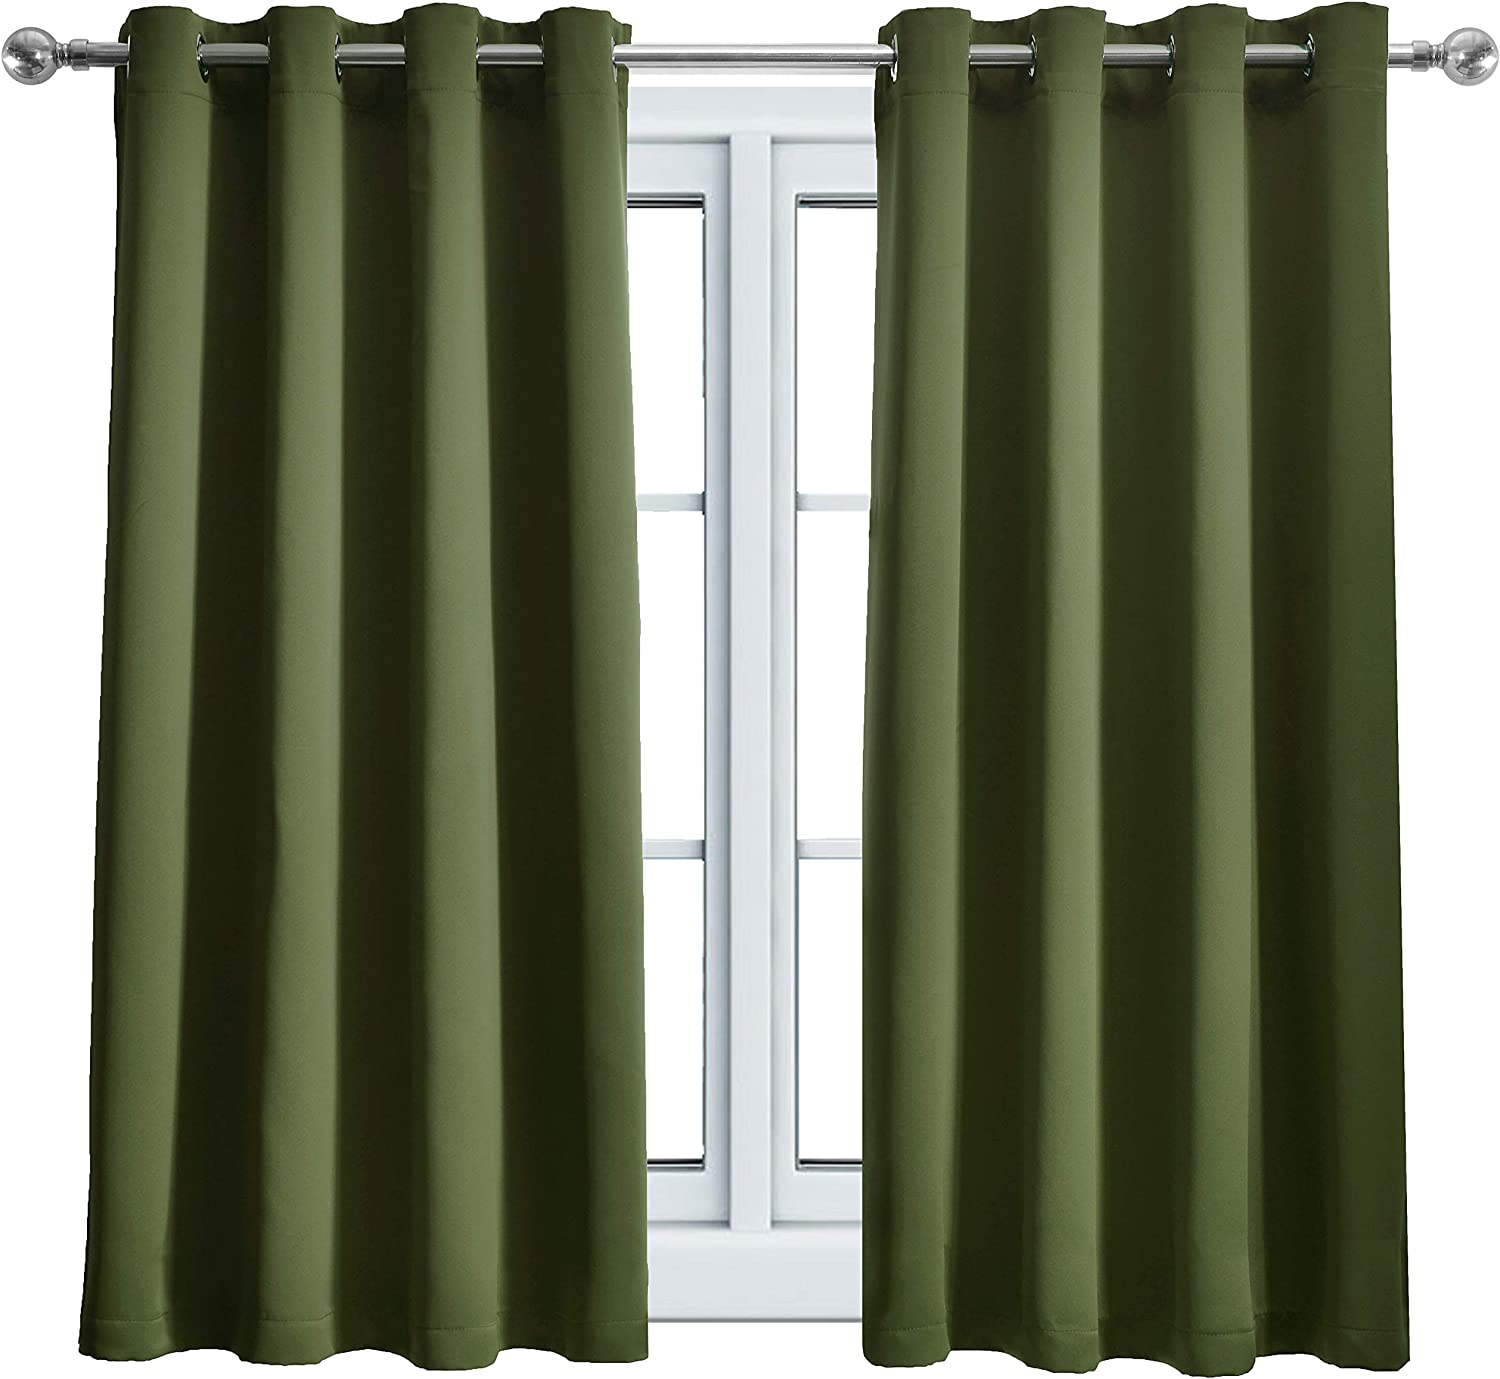 WONTEX Blackout Curtains Thermal Insulated with Grommet for Bedroom, 52 x 63 inch, Olive, 2 Curtain Panels